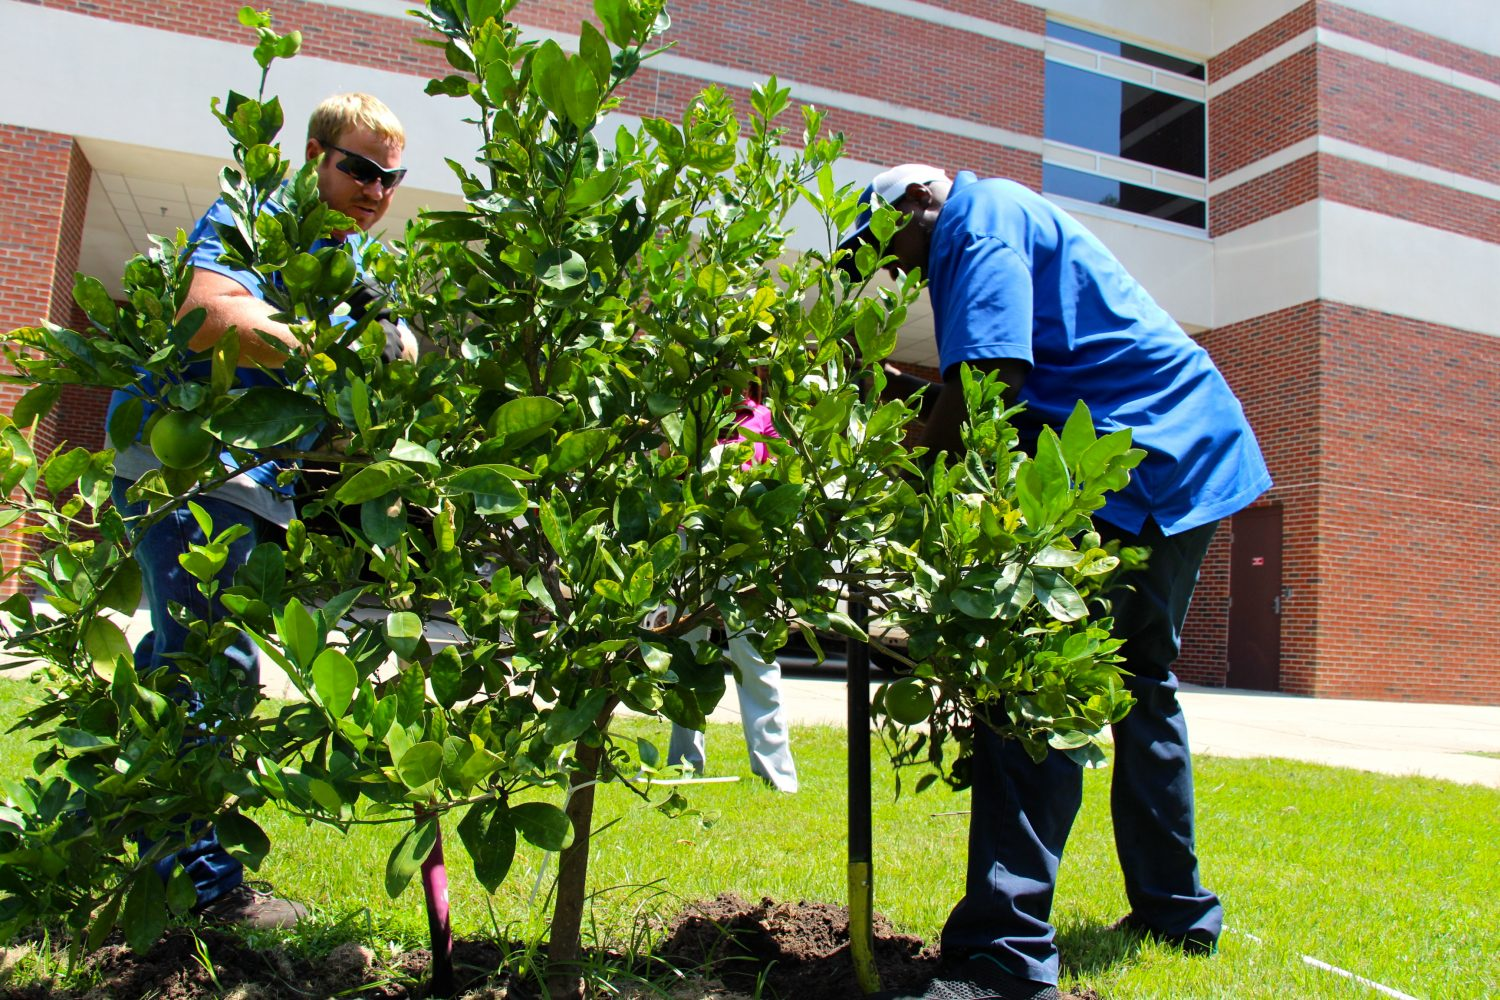 UF grounds workers will be working hard over the next two weeks to remove close to 150 citrus trees. Until Wednesday, the project was to last until January 1, 2014.